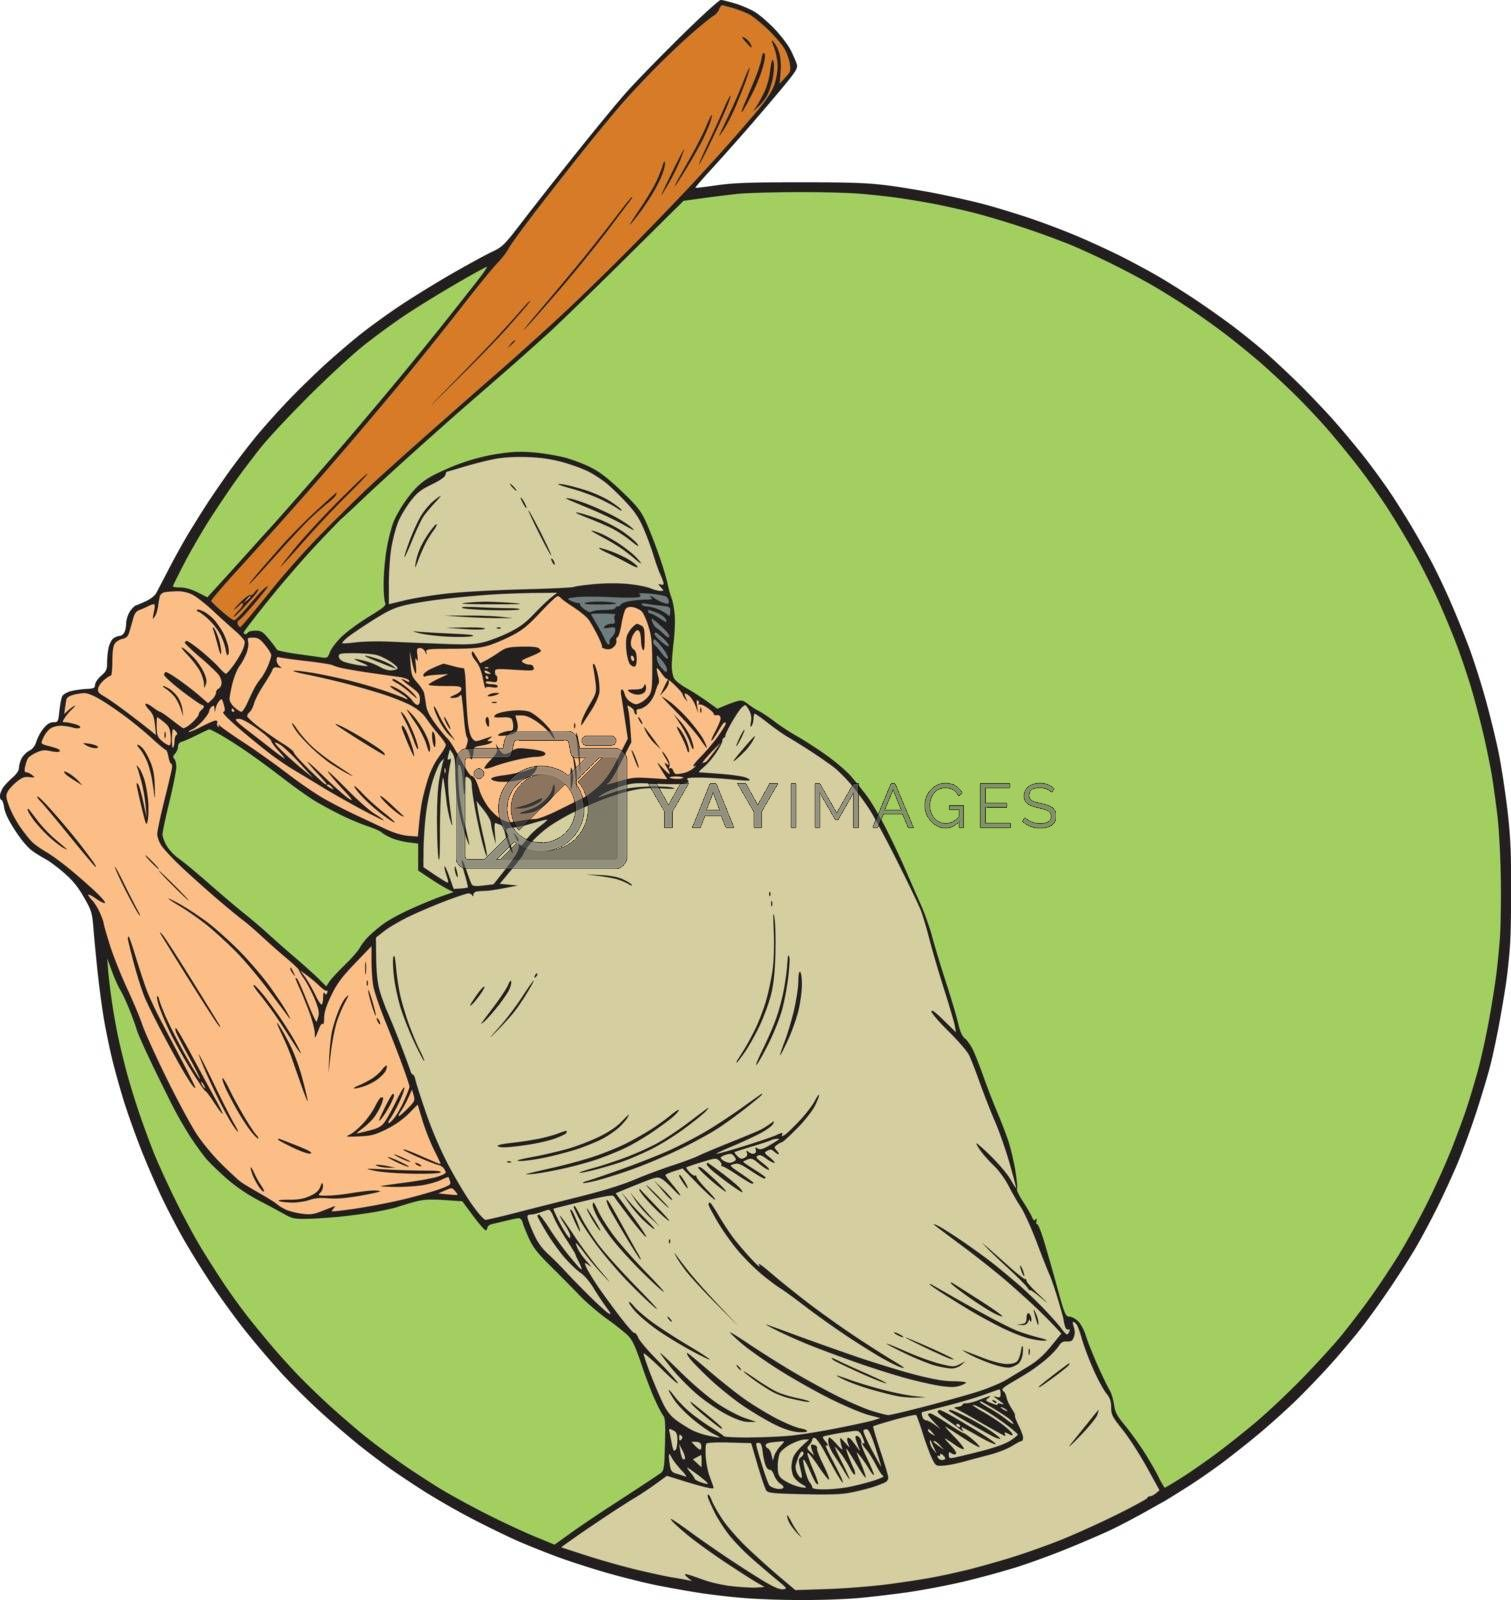 Drawing sketch style illustration of an american baseball player batter hitter holding bat in batting stance viewed from front set inside circle.